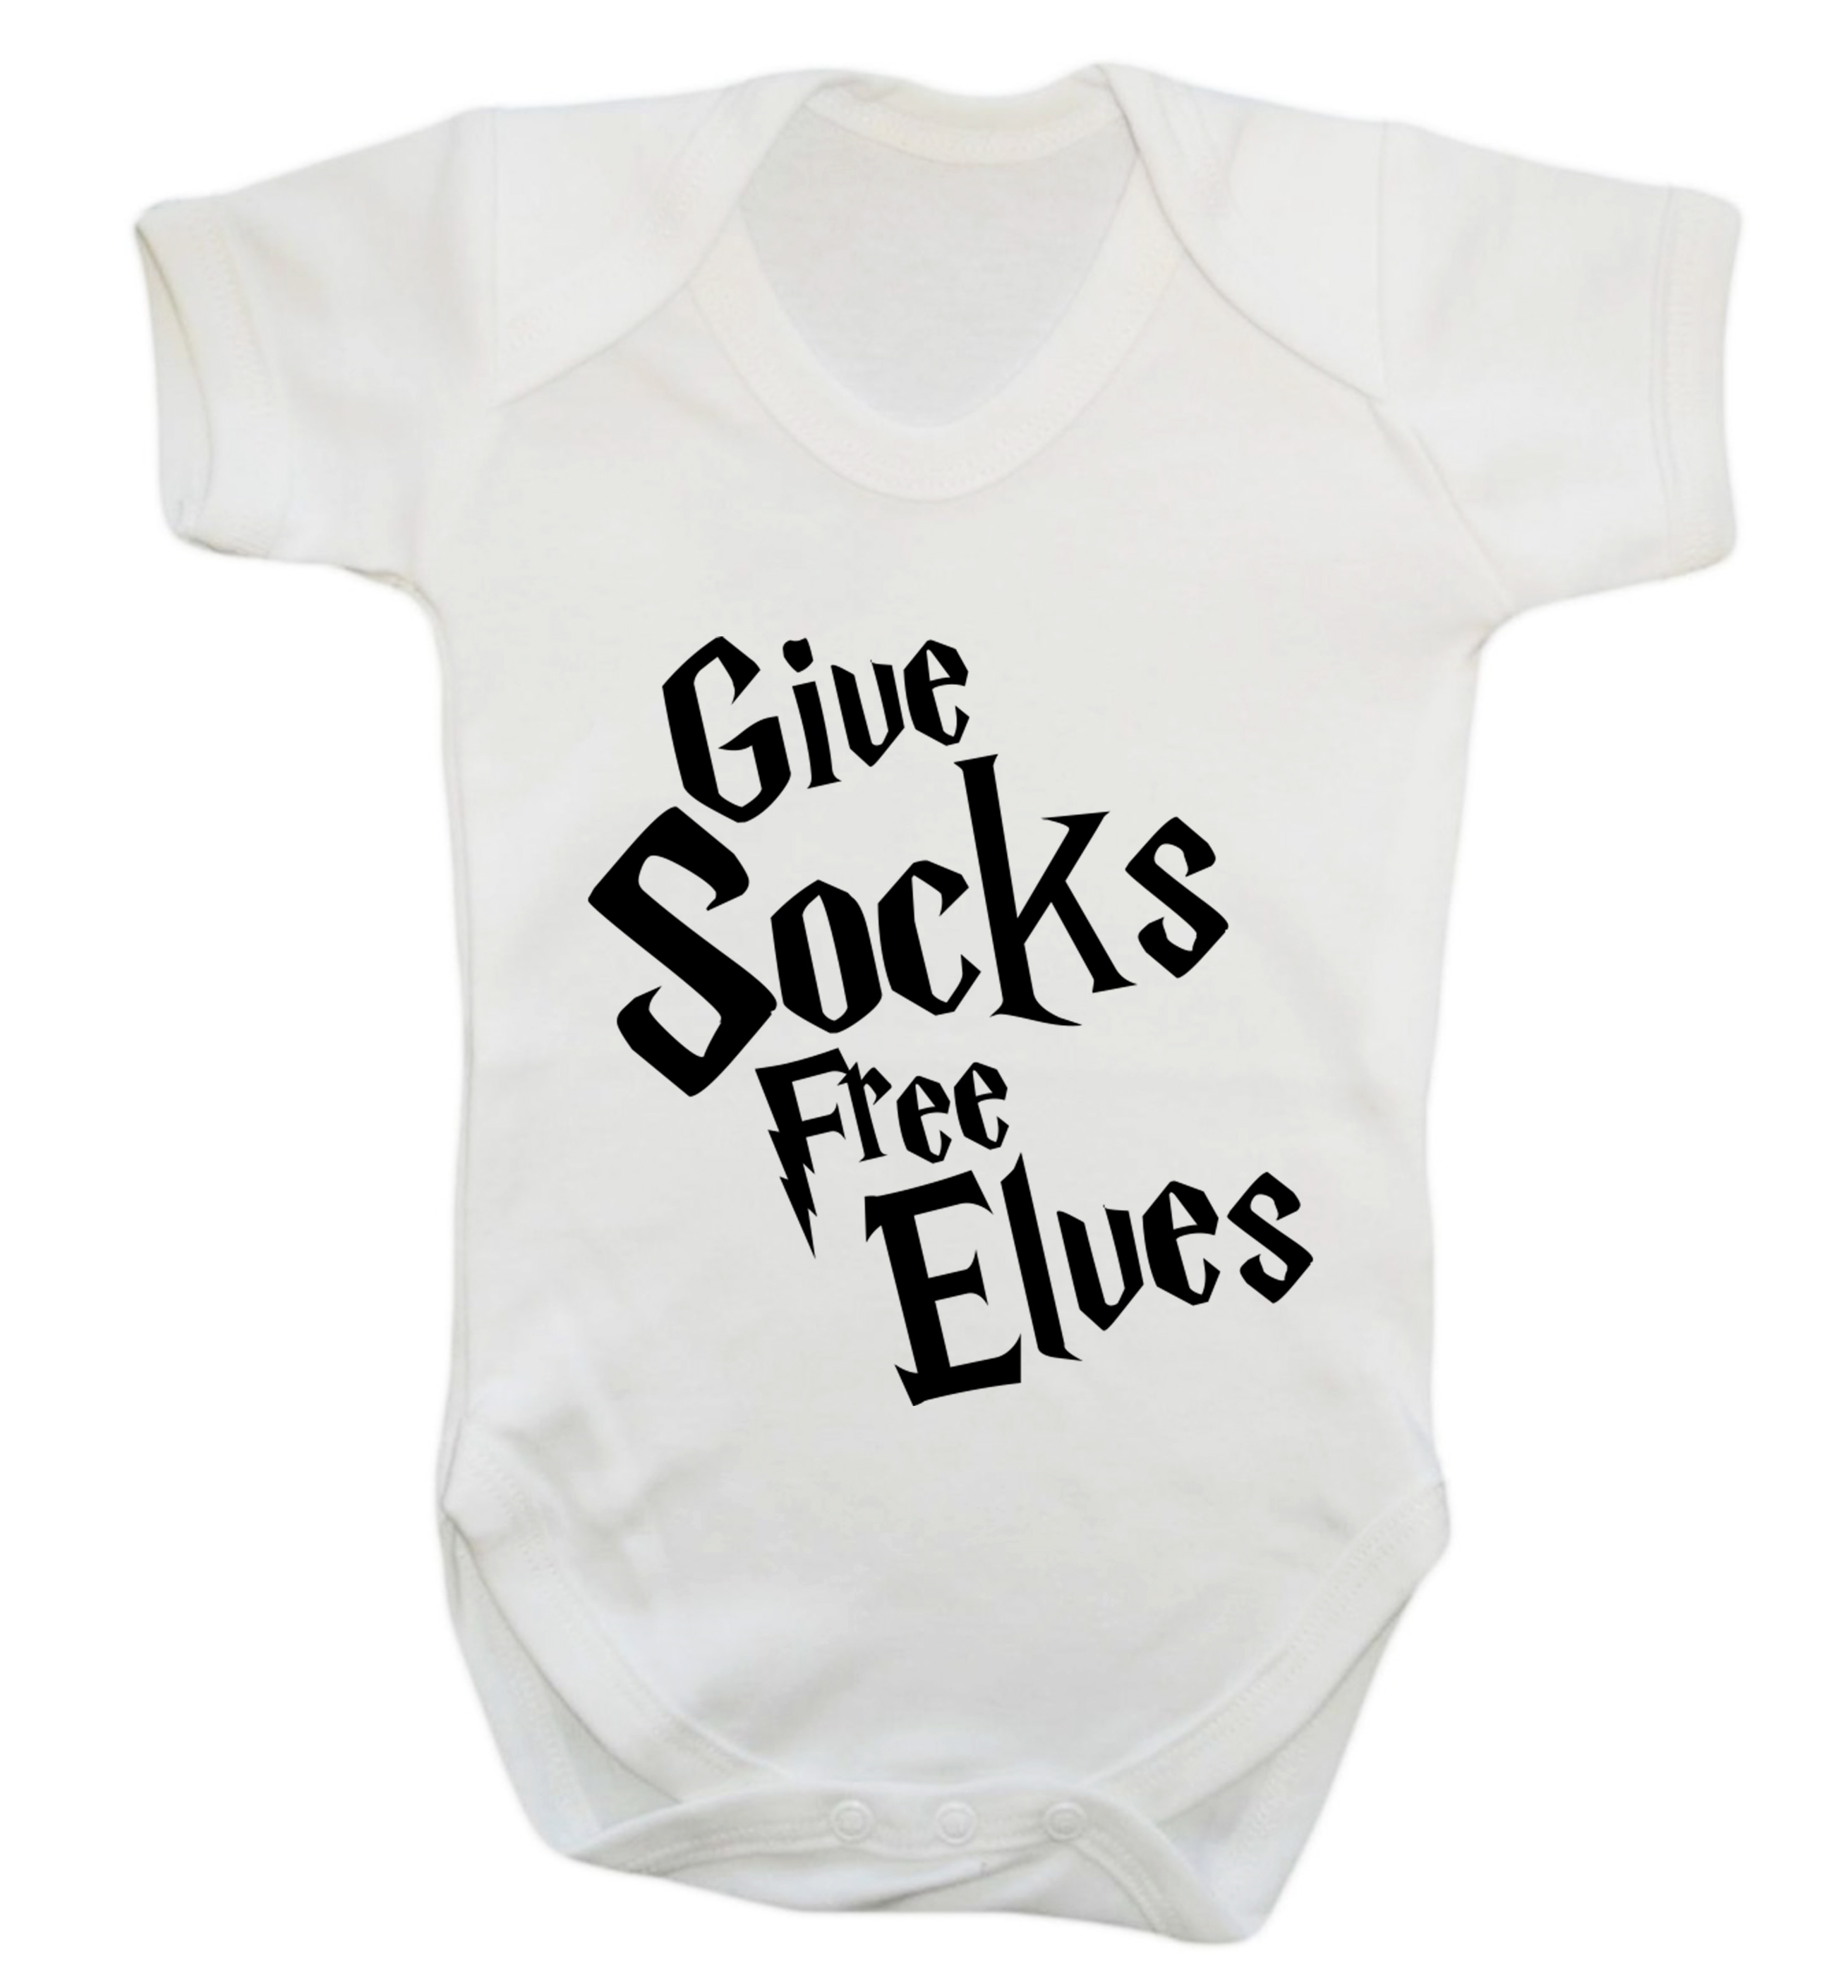 Give Socks Free Elves Baby Vest Grow Dobby Pottermore Funny Quote